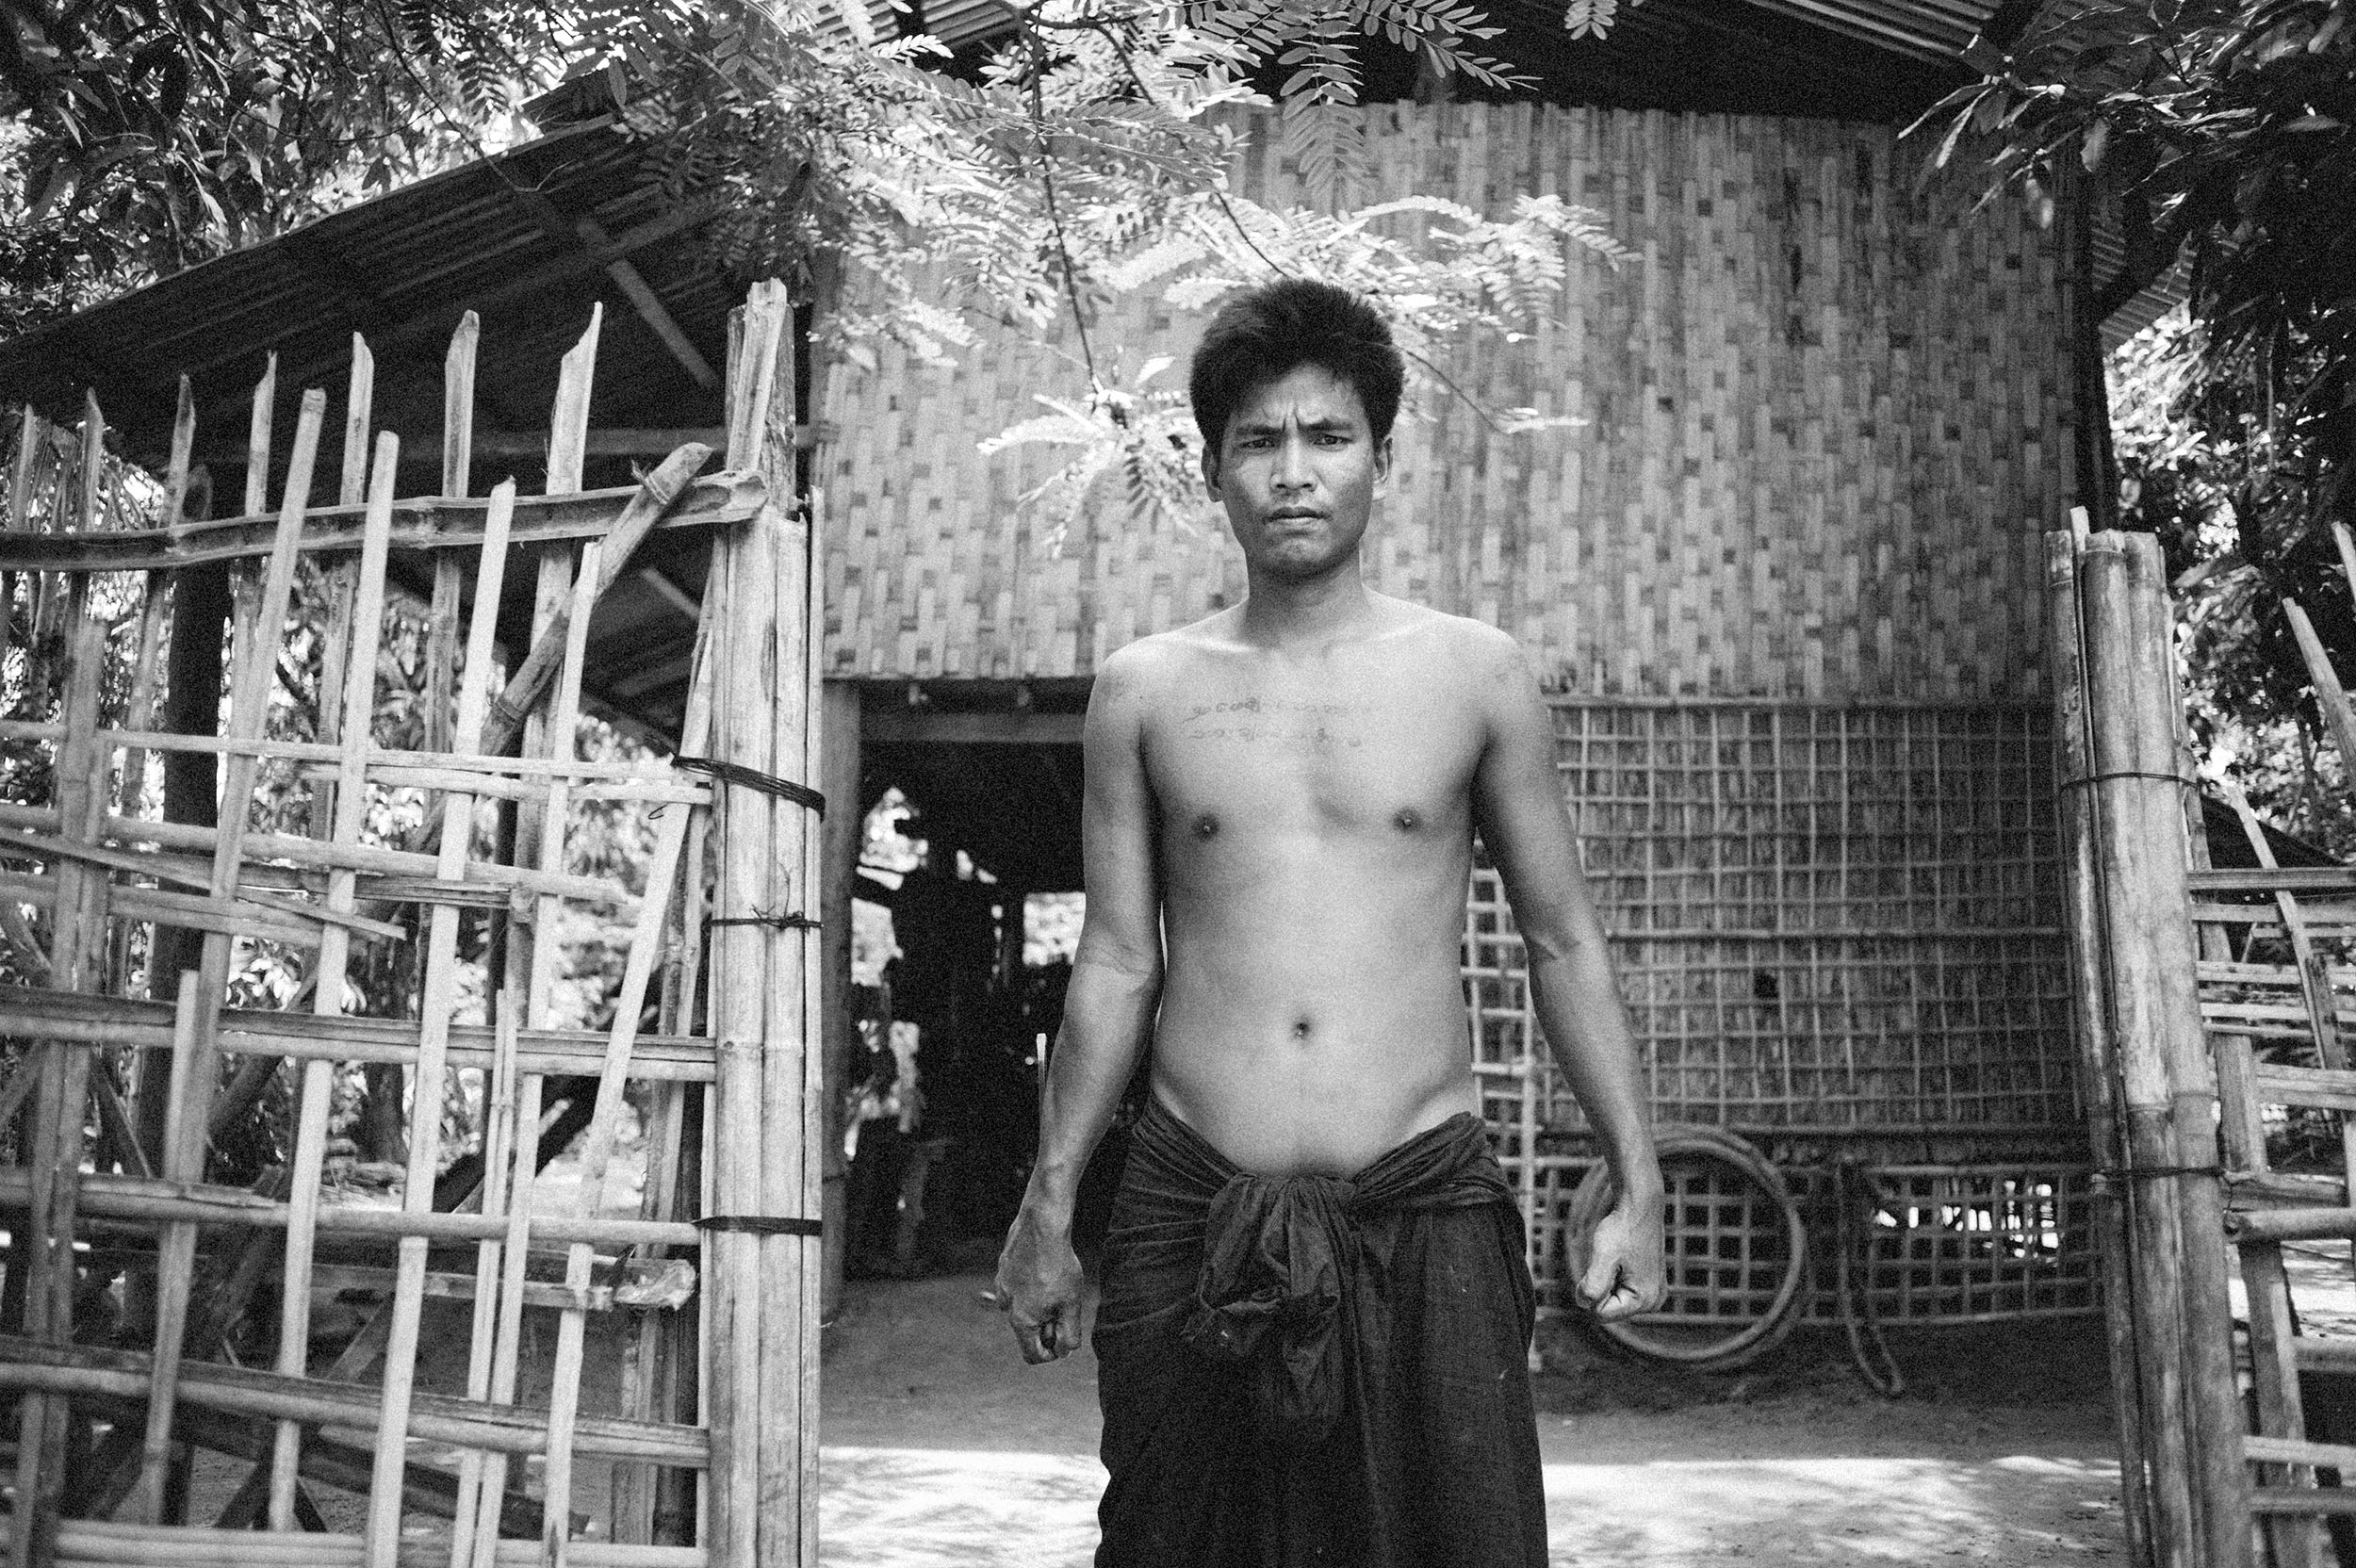 Guang Chwang, 34, stands guard outside his family's home on Sittwe's front line of fighting.